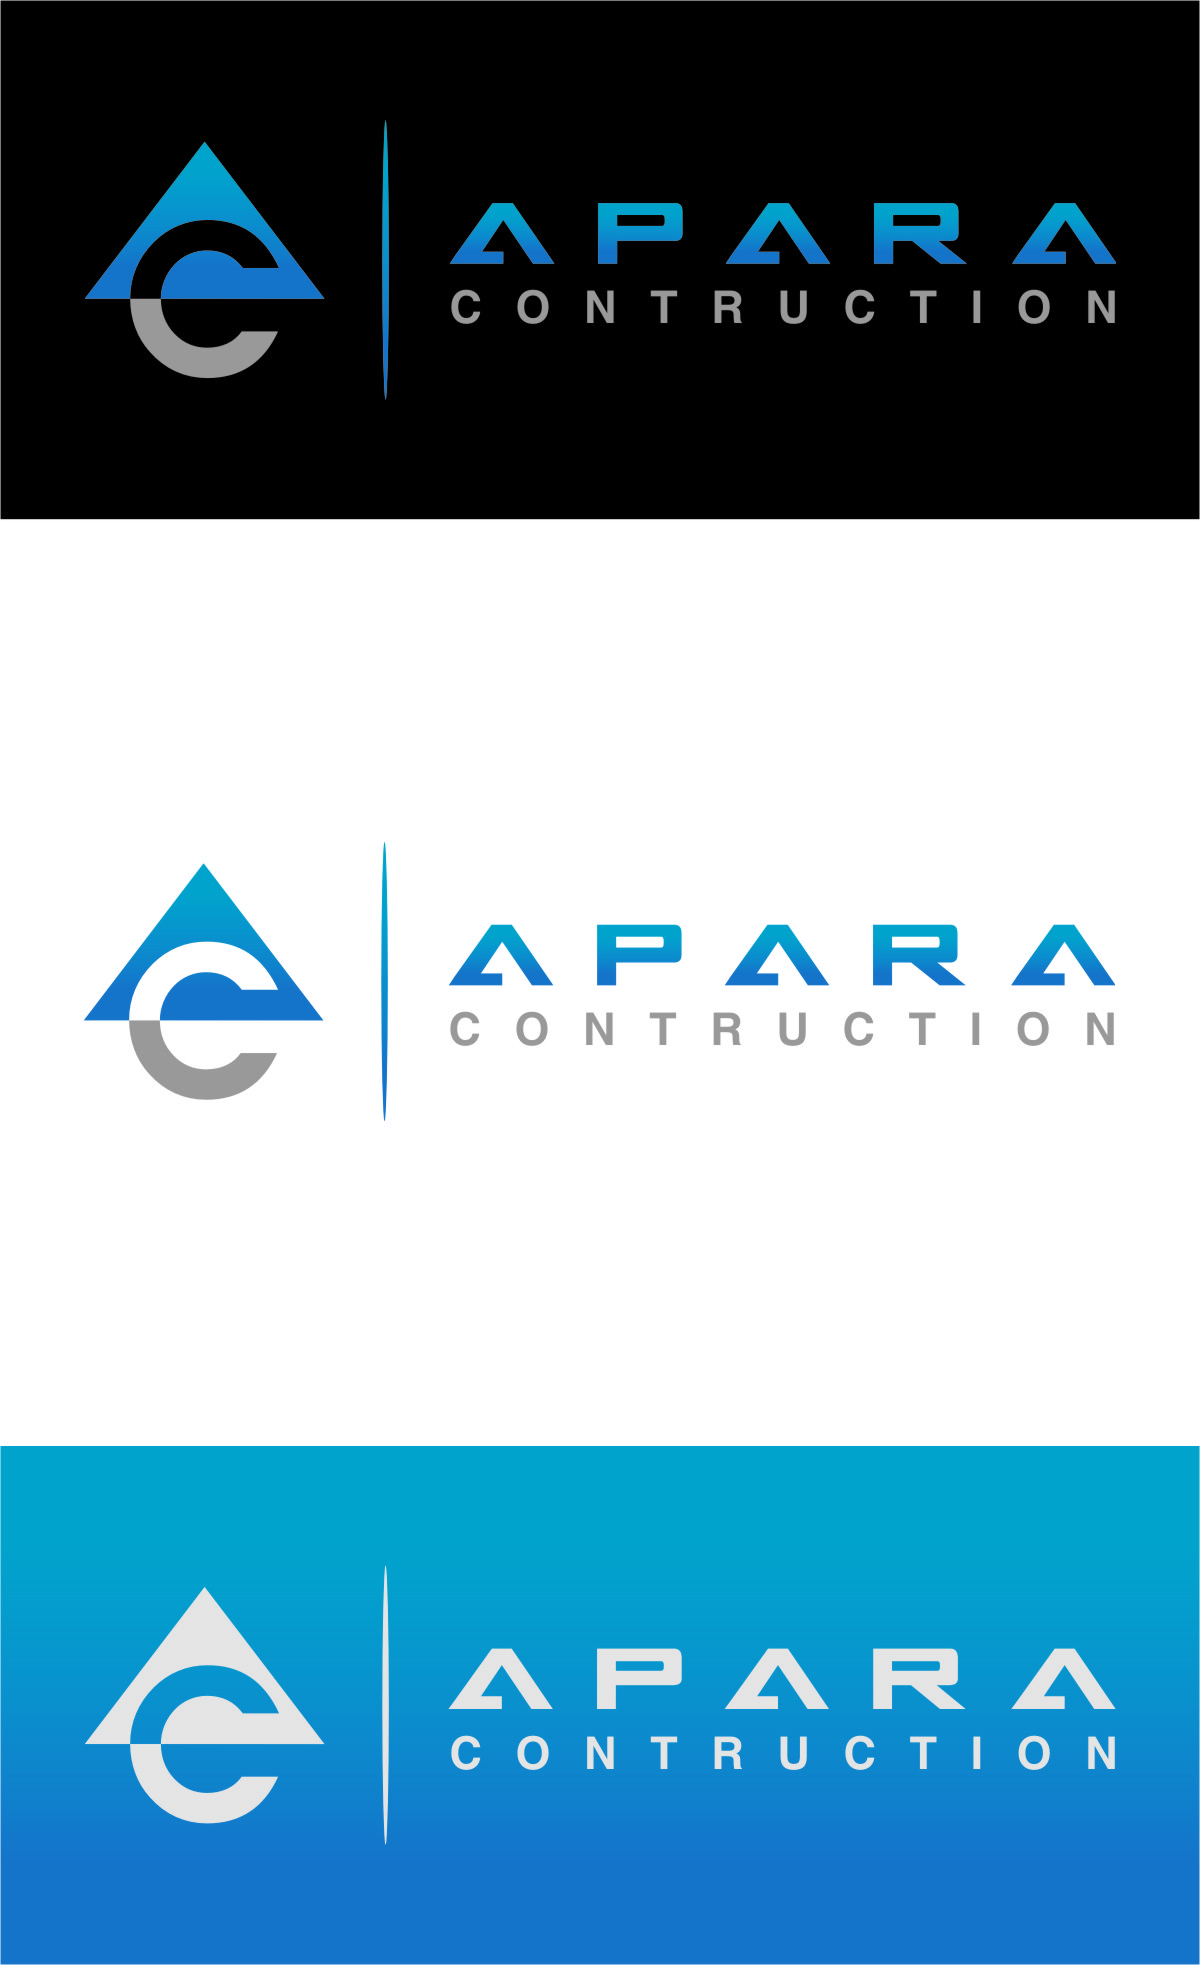 Logo Design by RoSyid Rono-Rene On Java - Entry No. 29 in the Logo Design Contest Apara Construction Logo Design.